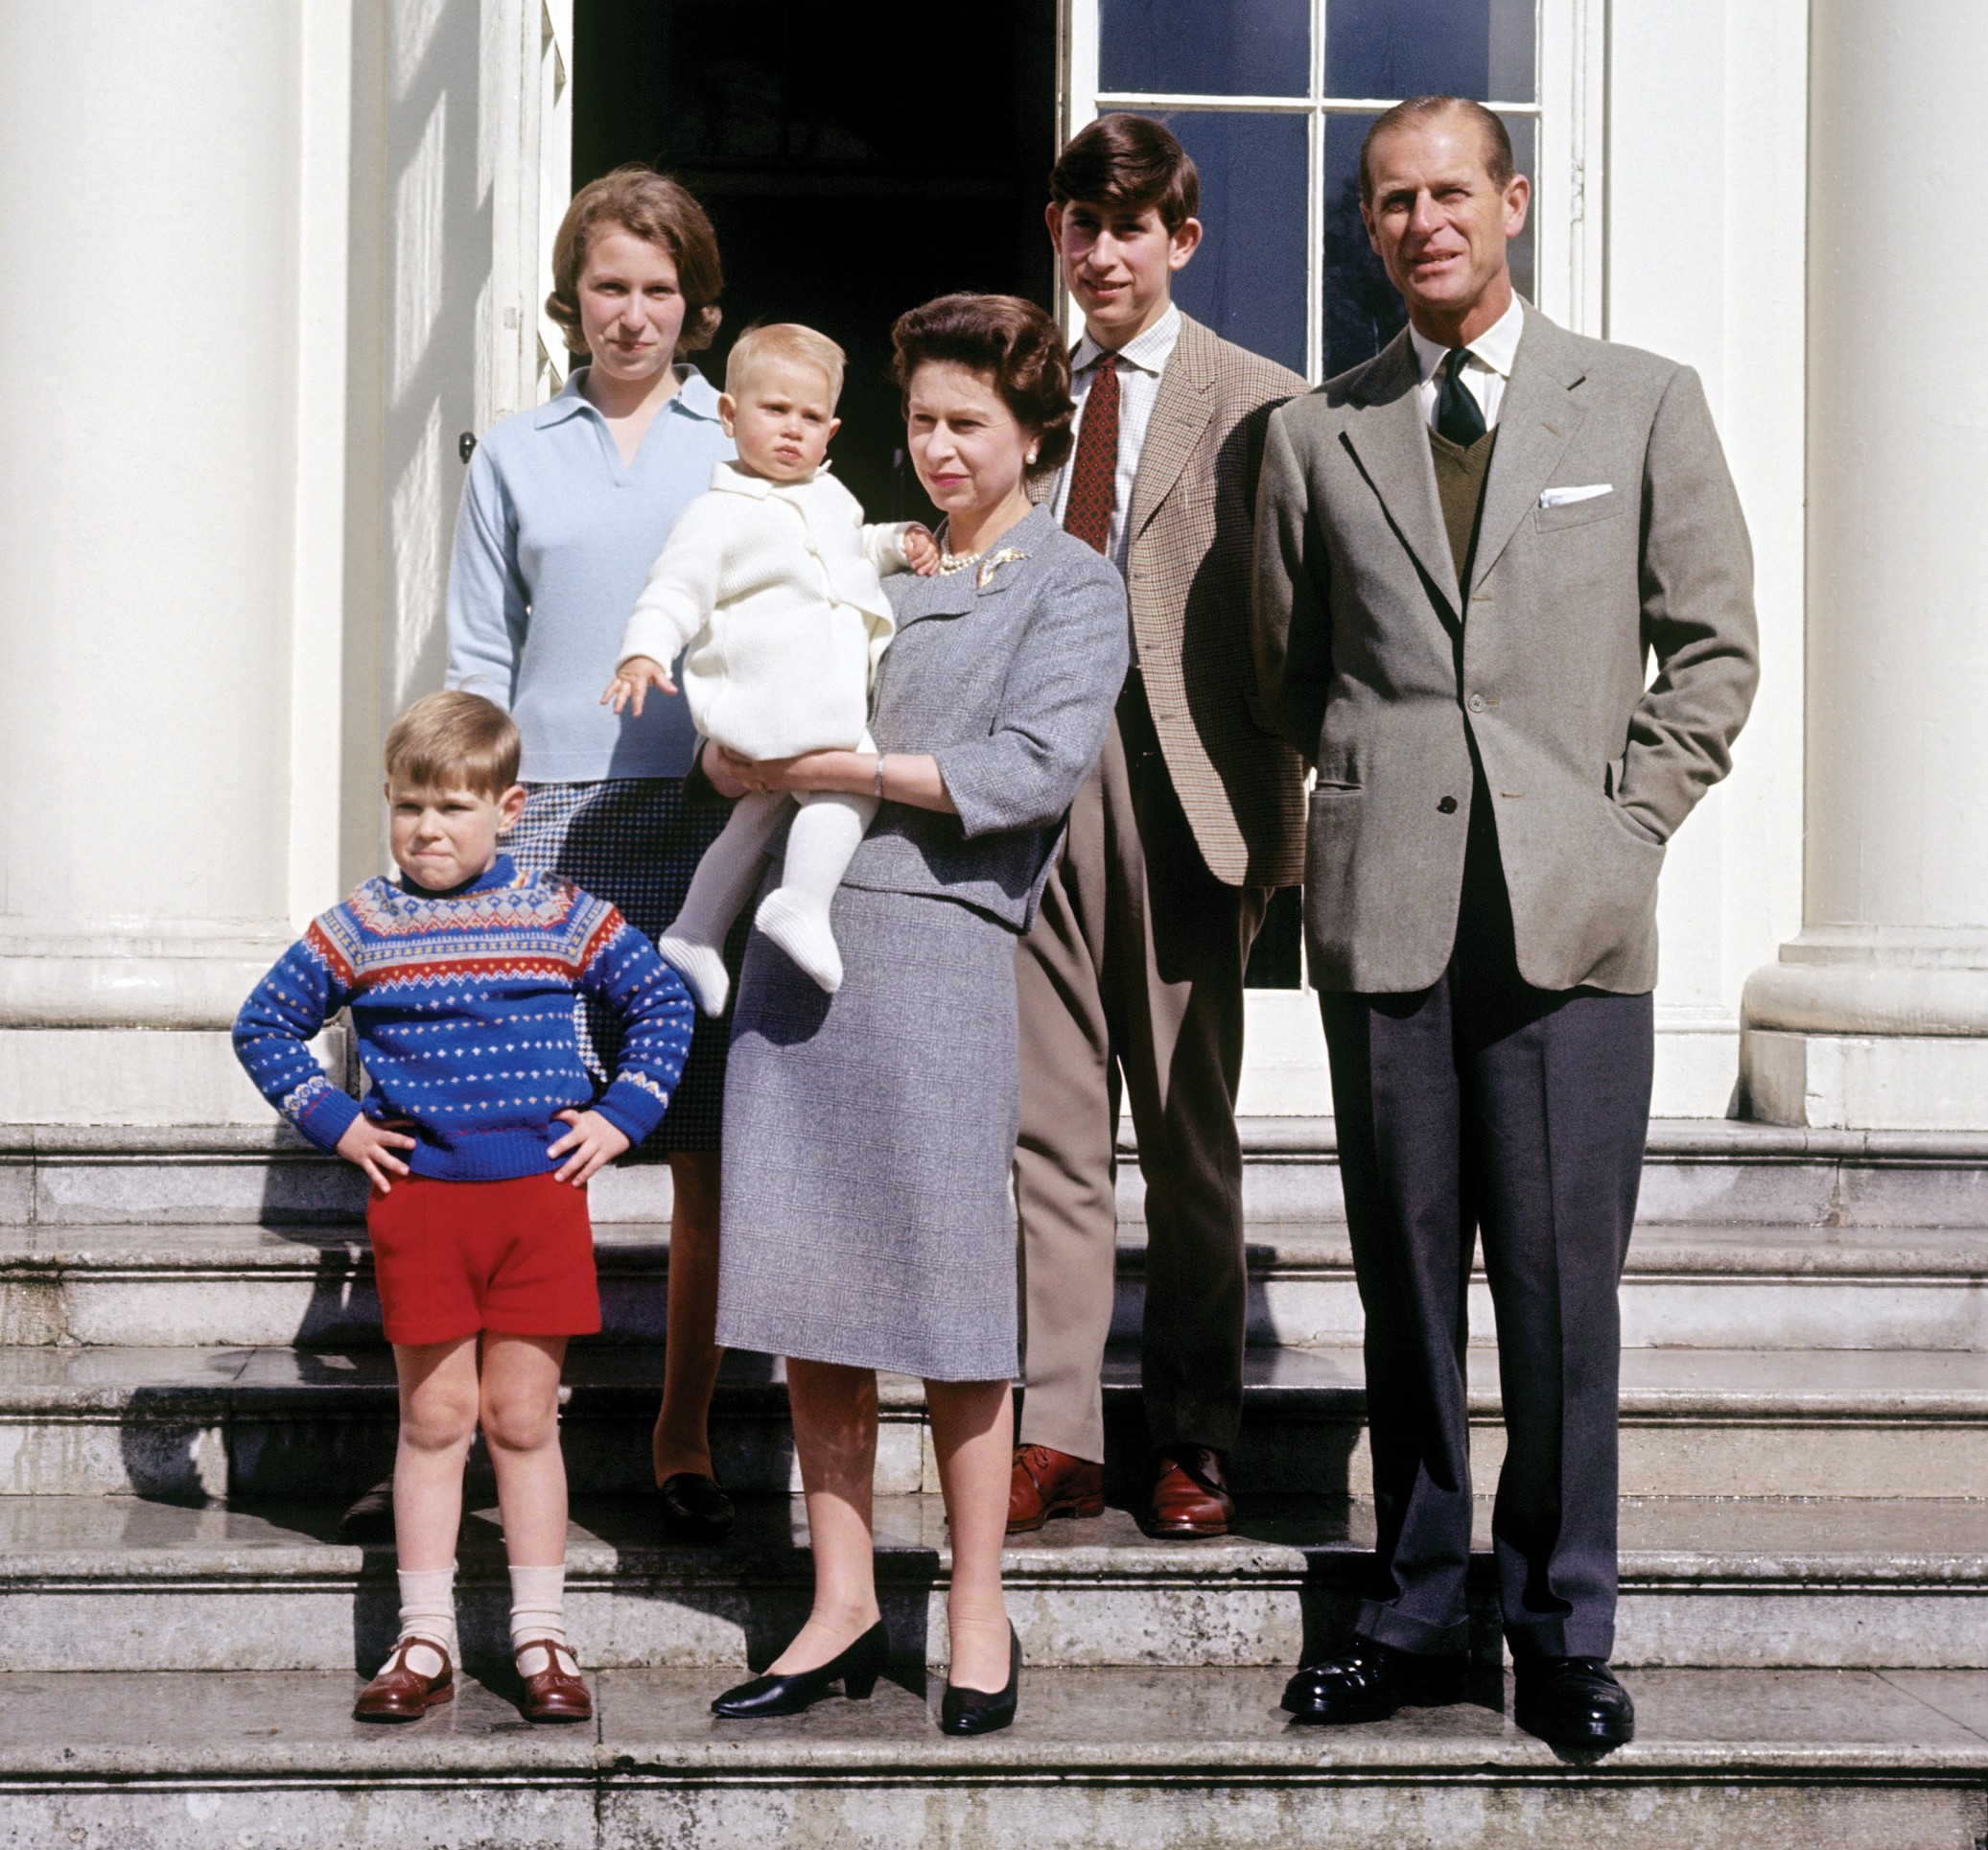 File photo dated 21/04/65 of Queen Elizabeth II holding the Earl of Wessex as a baby with (left to right) the Duke of York, the Princess Royal, the Prince of Wales and the Duke of Edinburgh. Anne celebrates her 70th birthday on Saturday.,Image: 551796152, License: Rights-managed, Restrictions: FILE PHOTO, Model Release: no, Credit line: PA News / PA Images / Profimedia